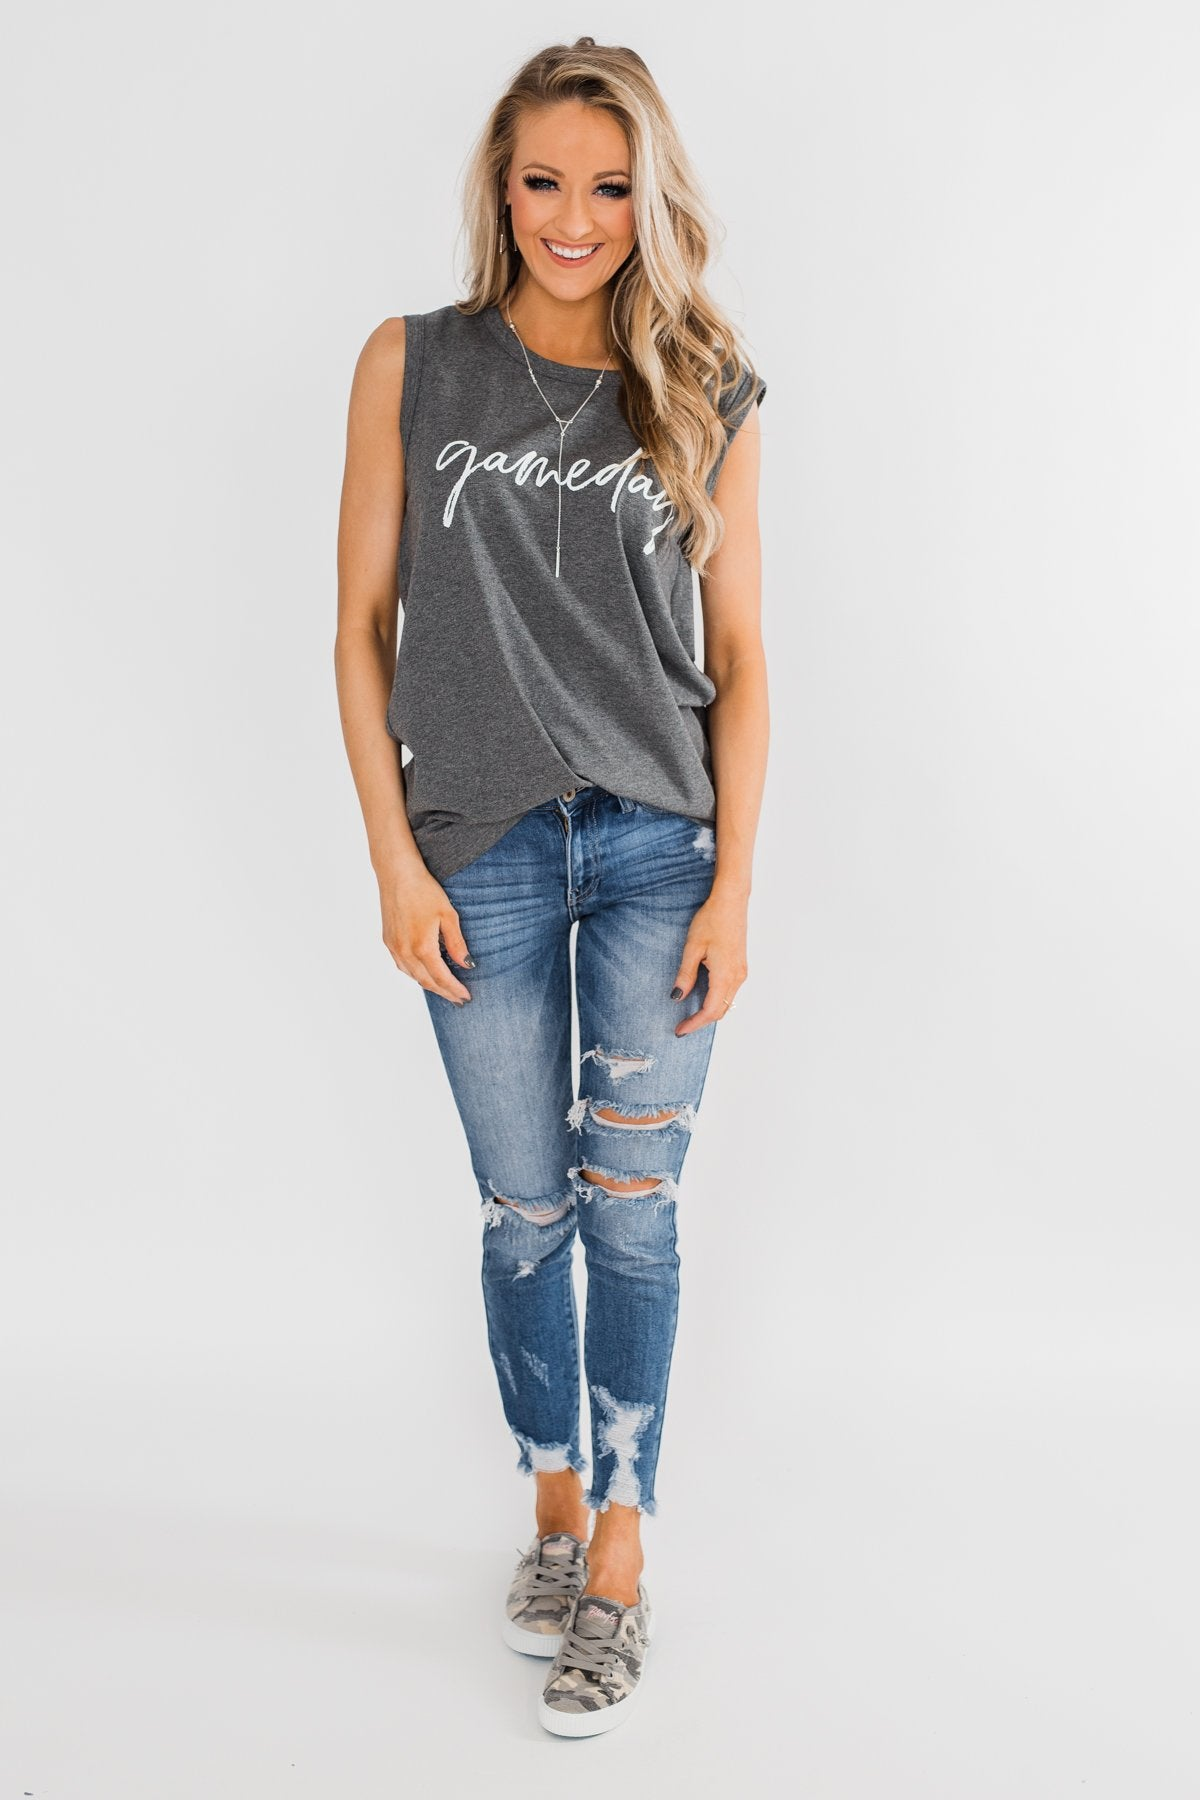 """Gameday"" Graphic Tank Top- Charcoal"